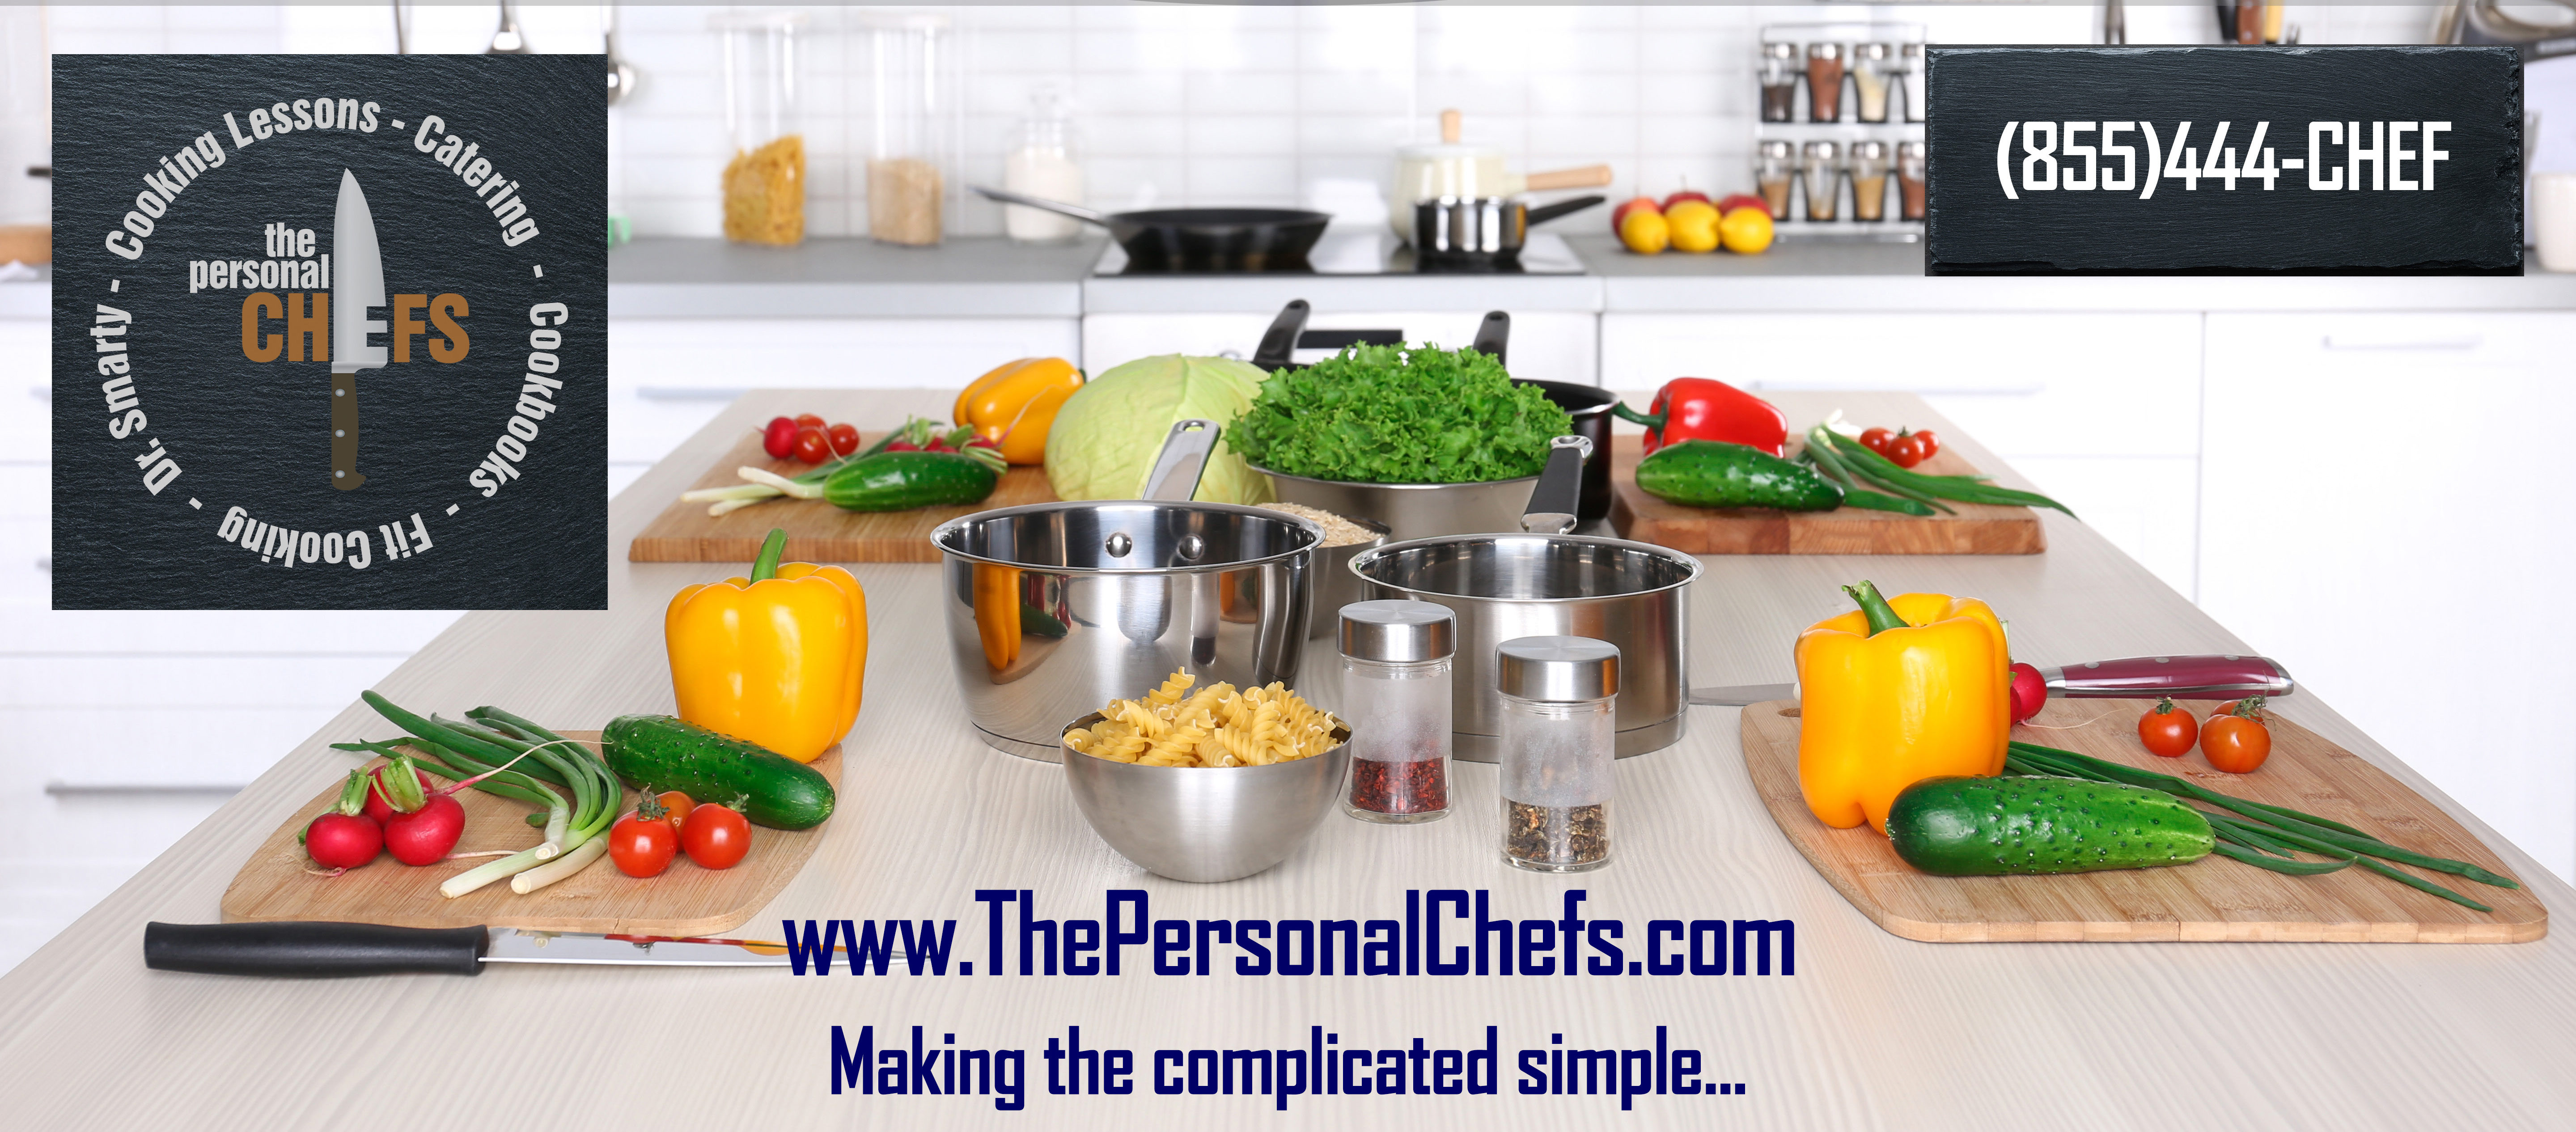 The Personal Chefs